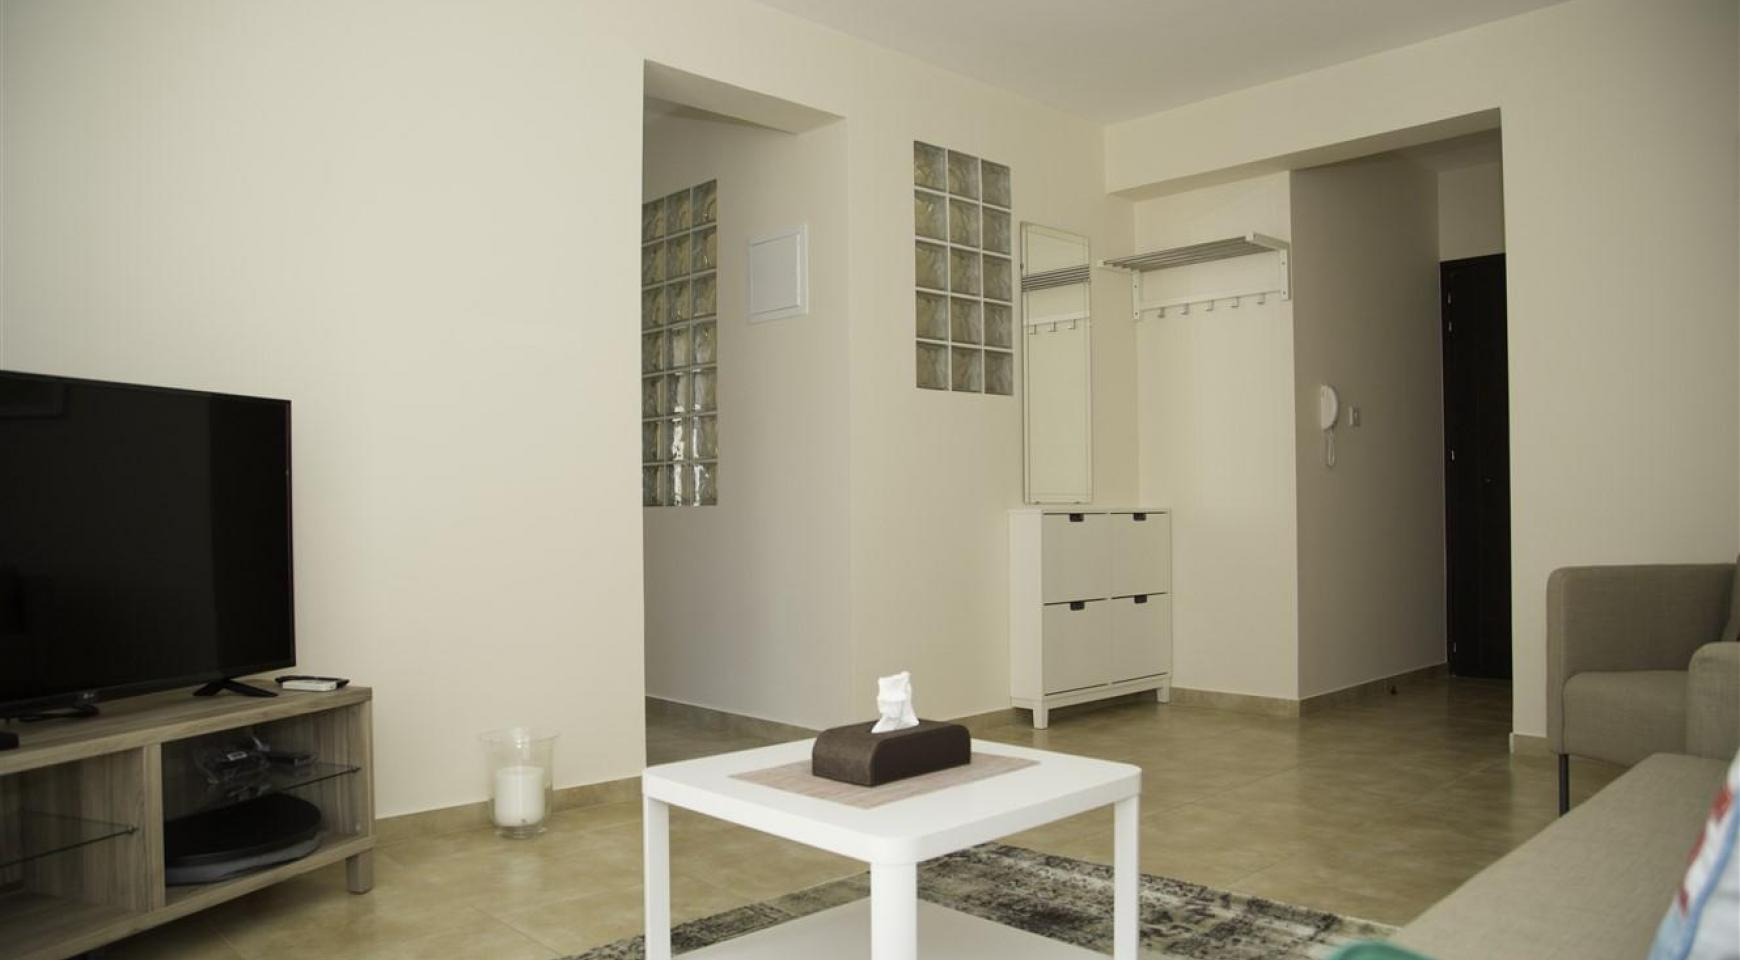 Luxury One Bedroom Apartment Frida 103 in the Tourist Area - 4